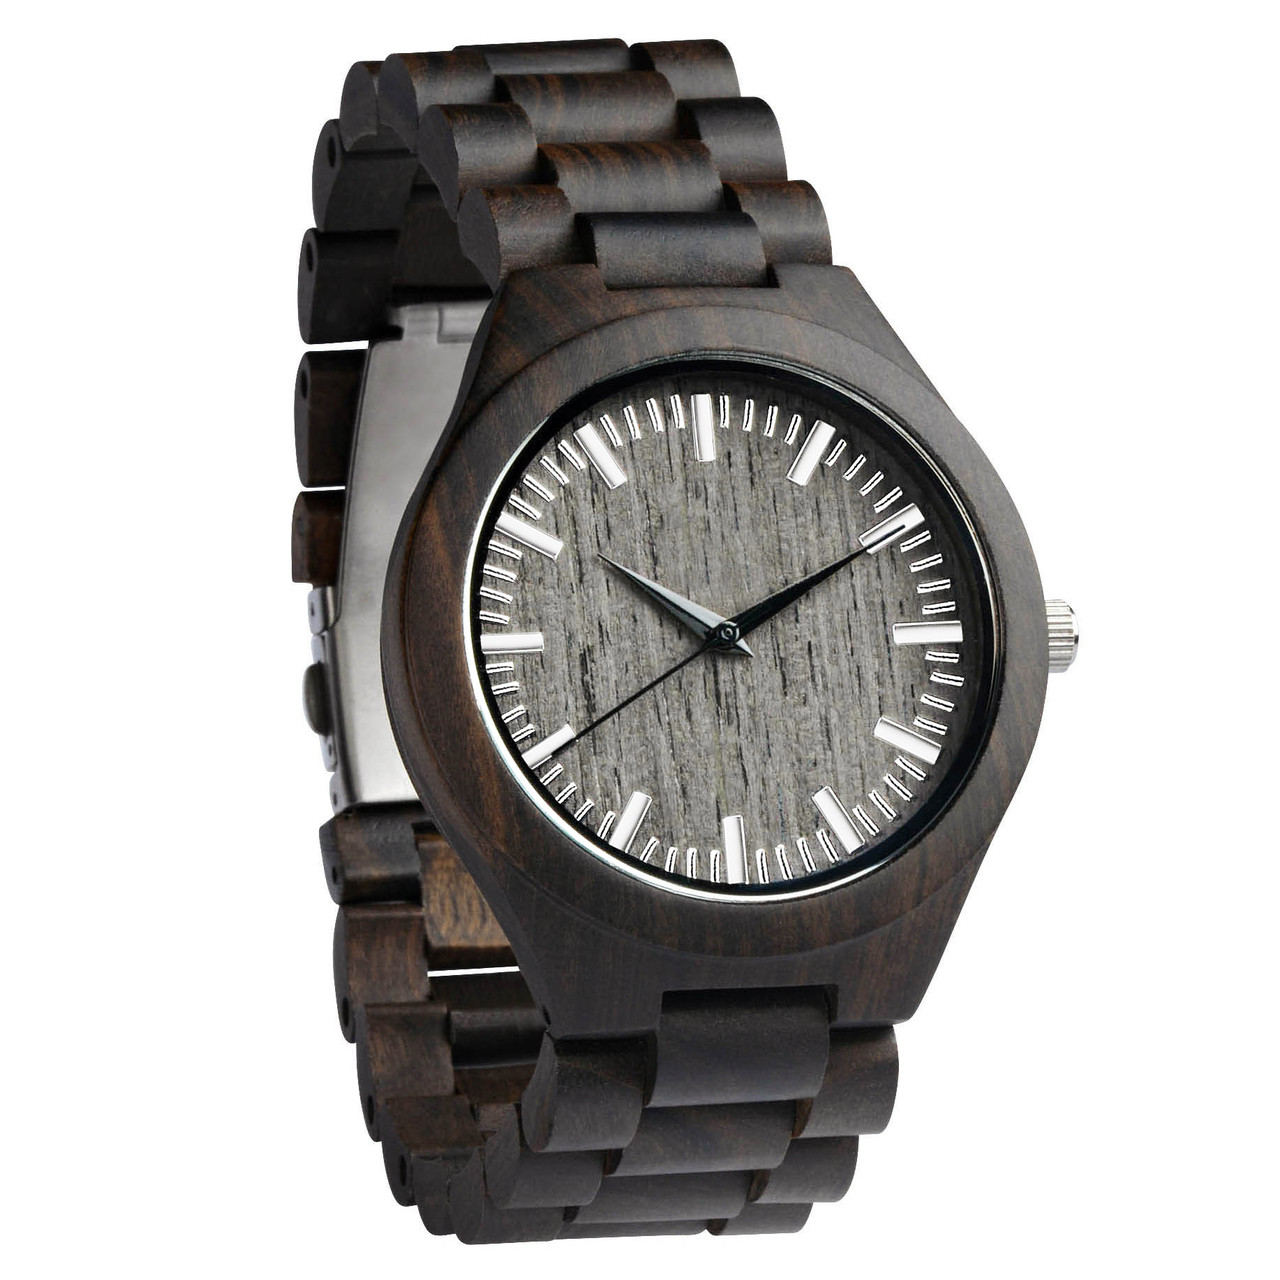 Grpn - Engraved Personalized Bamboo Watch W#72